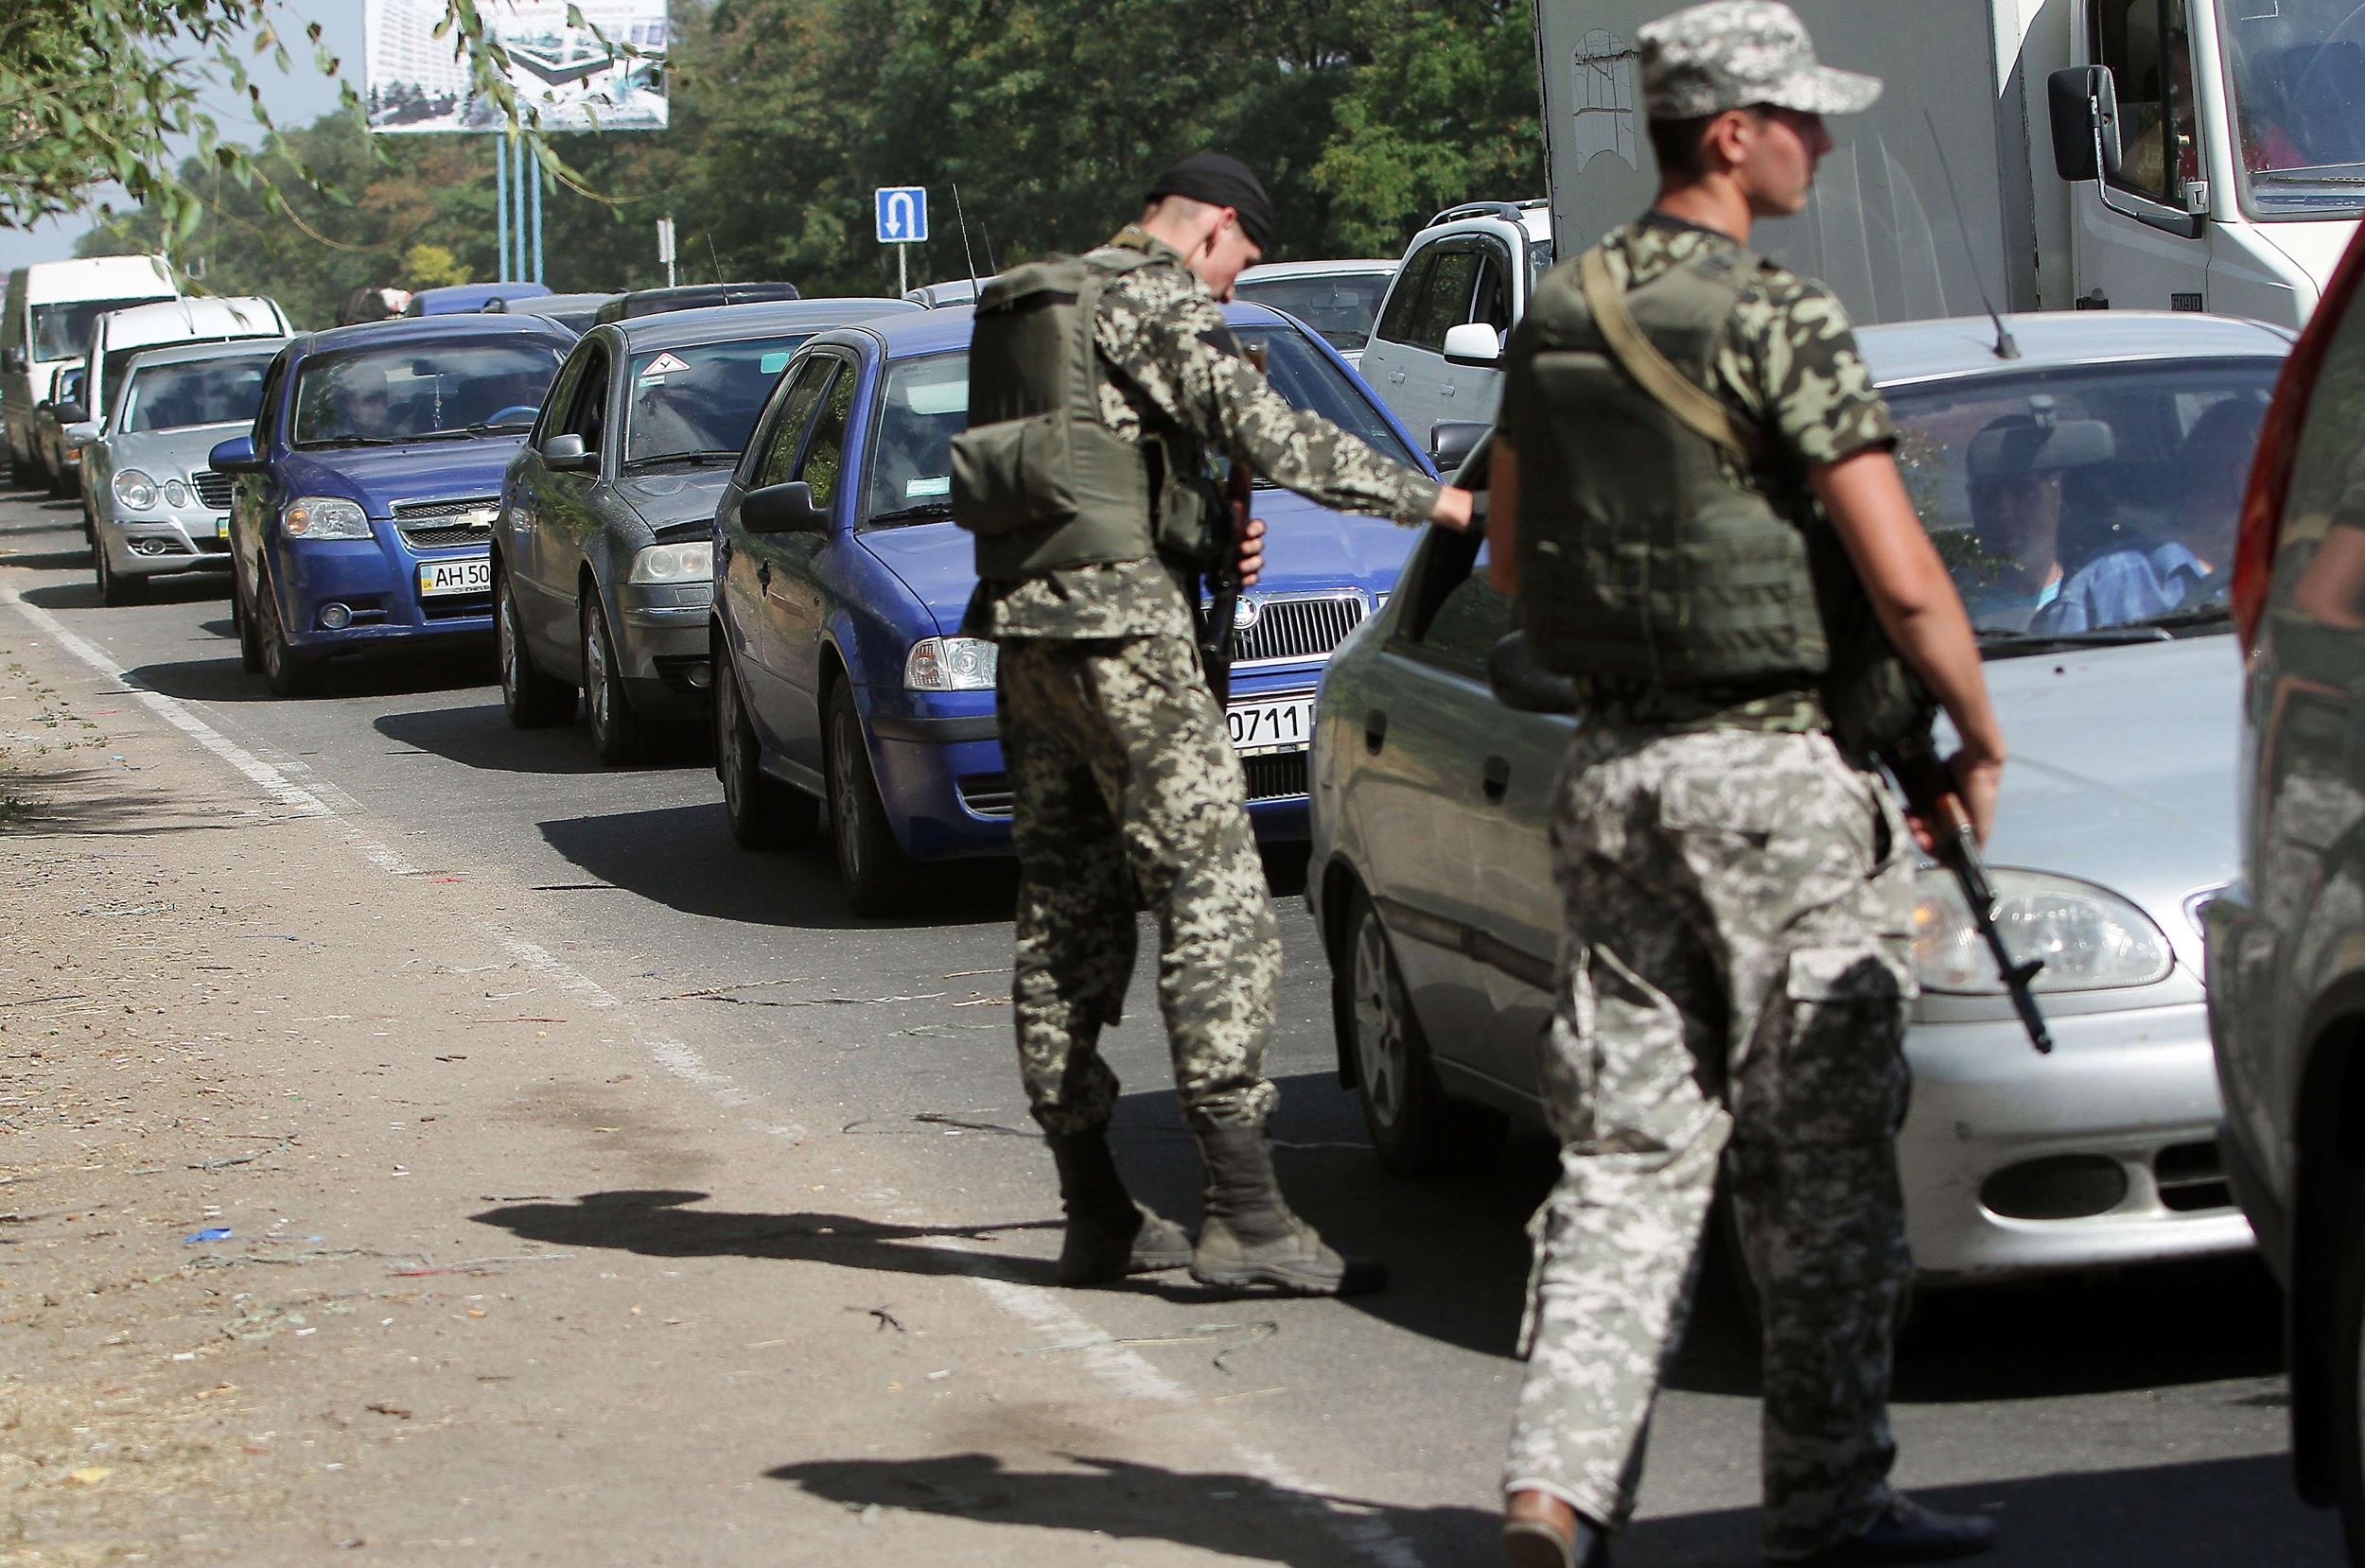 Image: Ukrainian troops stop cars at a checkpoint as people flee the southern Ukrainian city of Mariupol